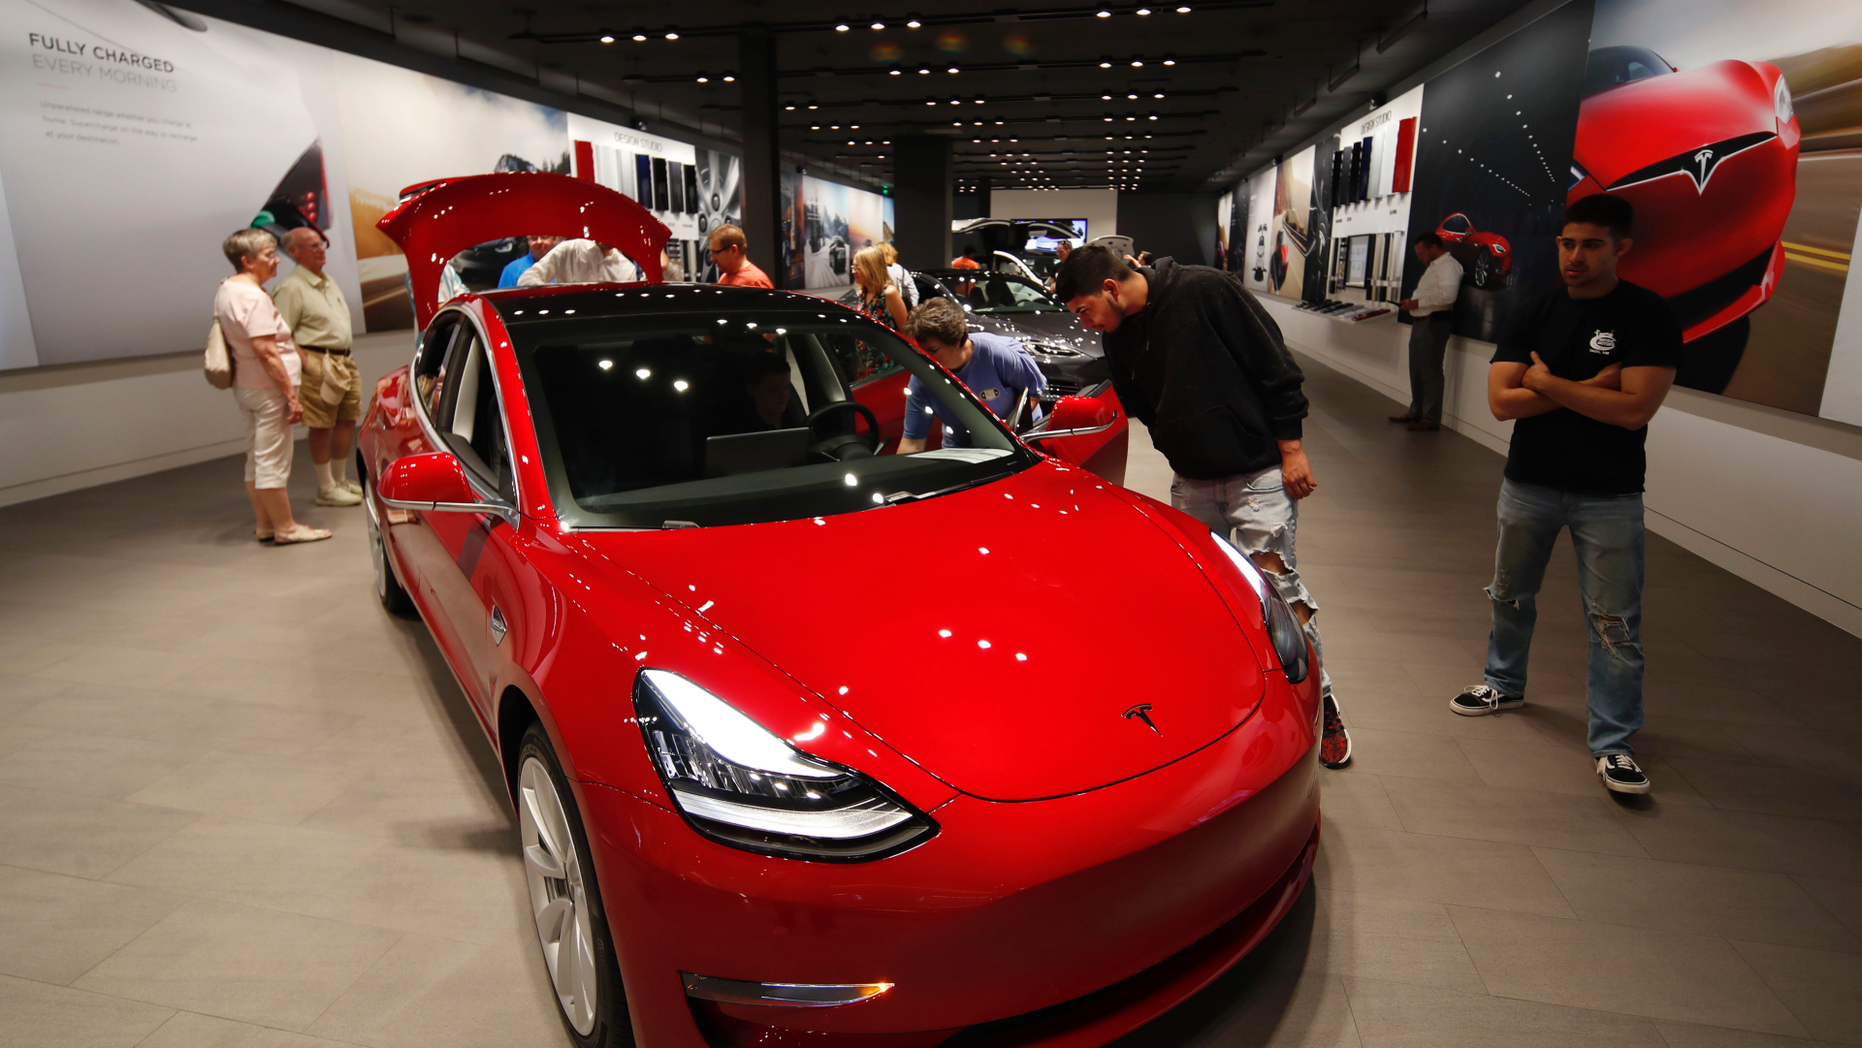 Tesla hits brakes on retail store closures, will raise prices instead